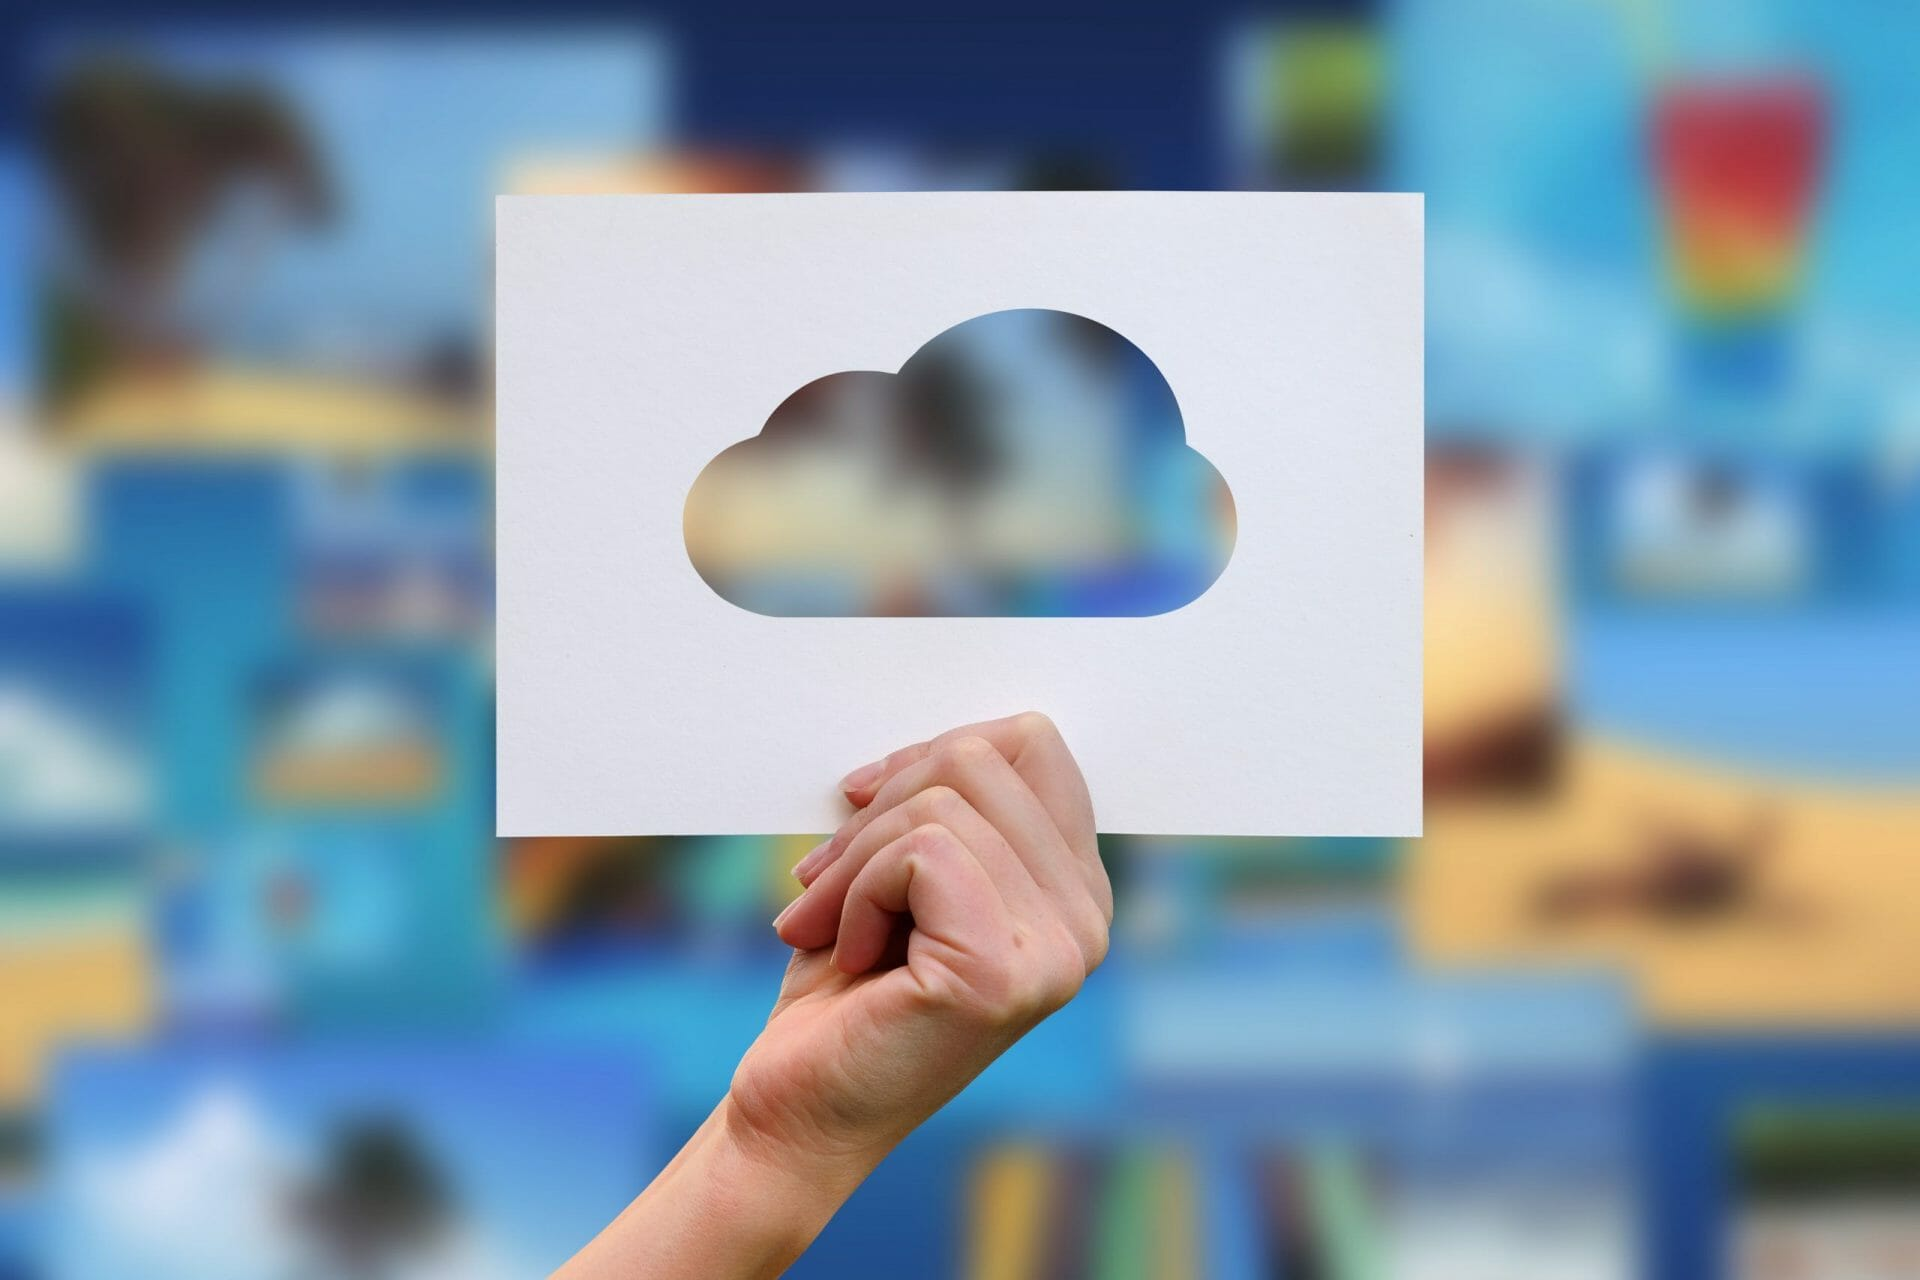 cloud blurred background